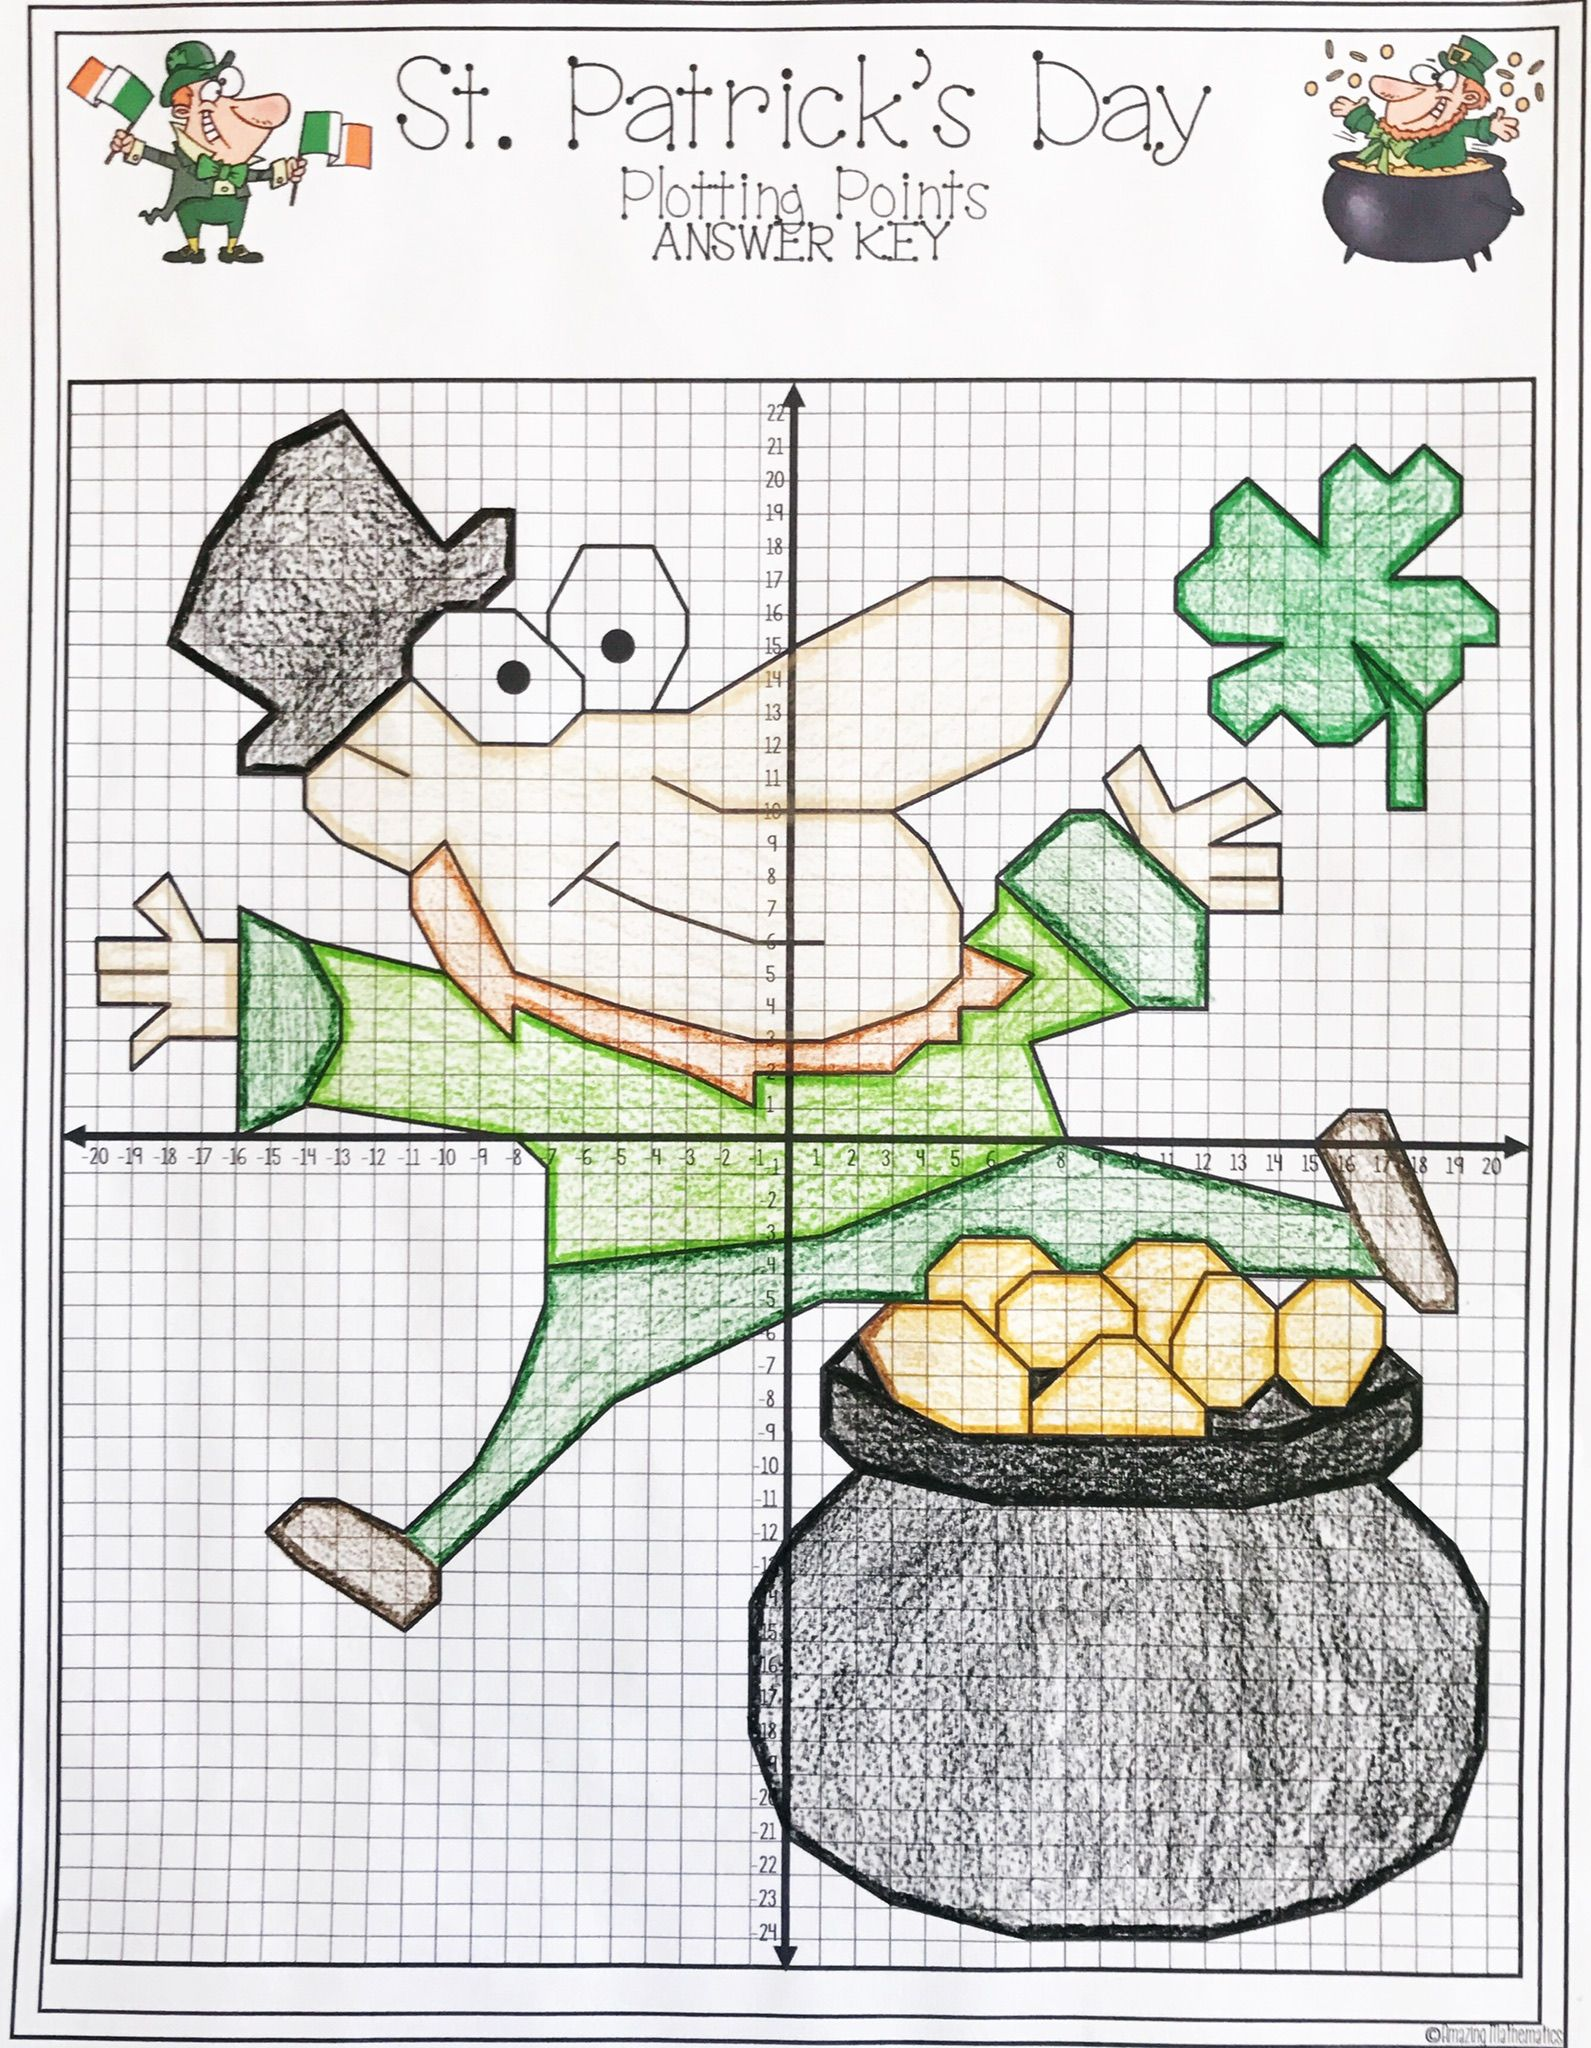 St Patricks Day Math Activity Plotting Points